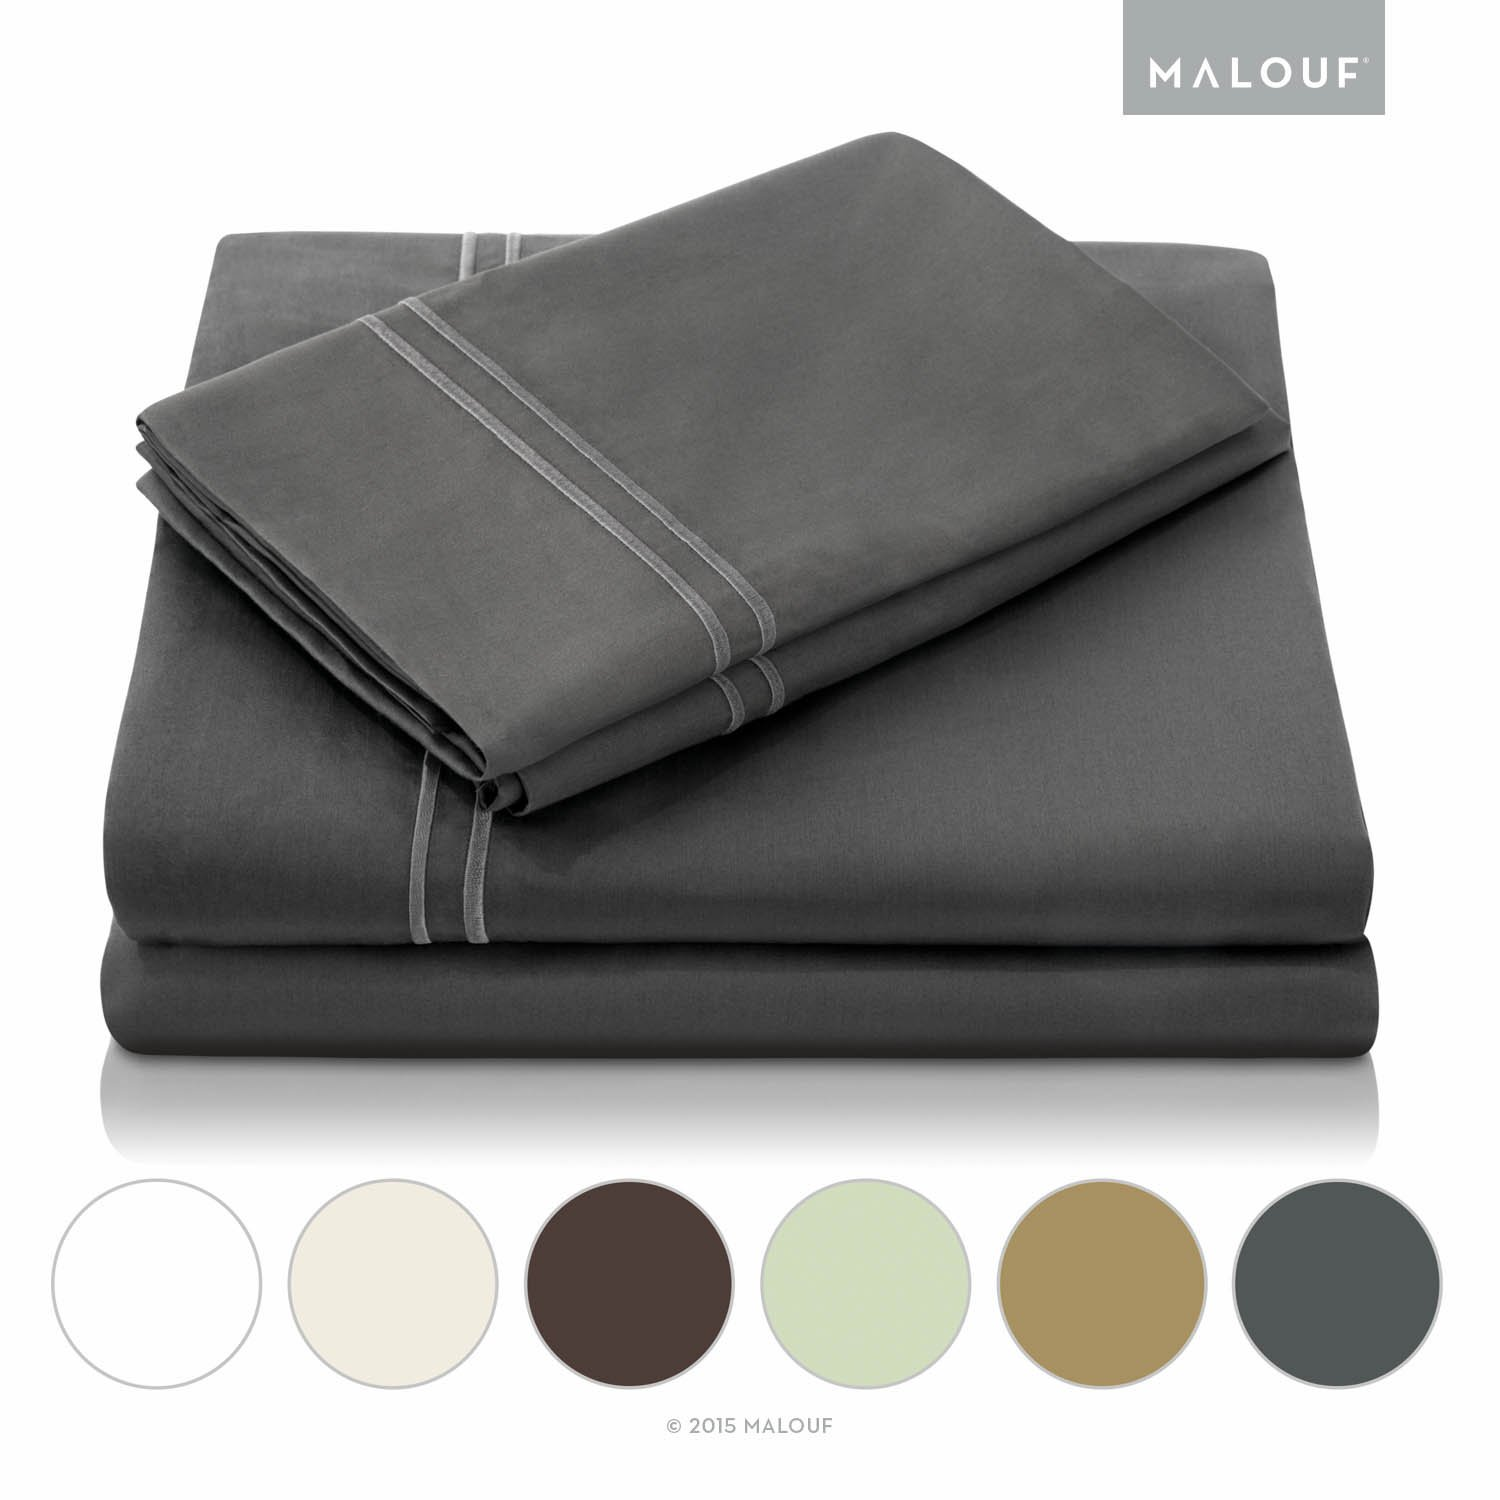 MALOUF 600 Thread Count Genuine Egyptian Cotton Single Ply Bed Sheet Set - Split King - Slate by MALOUF